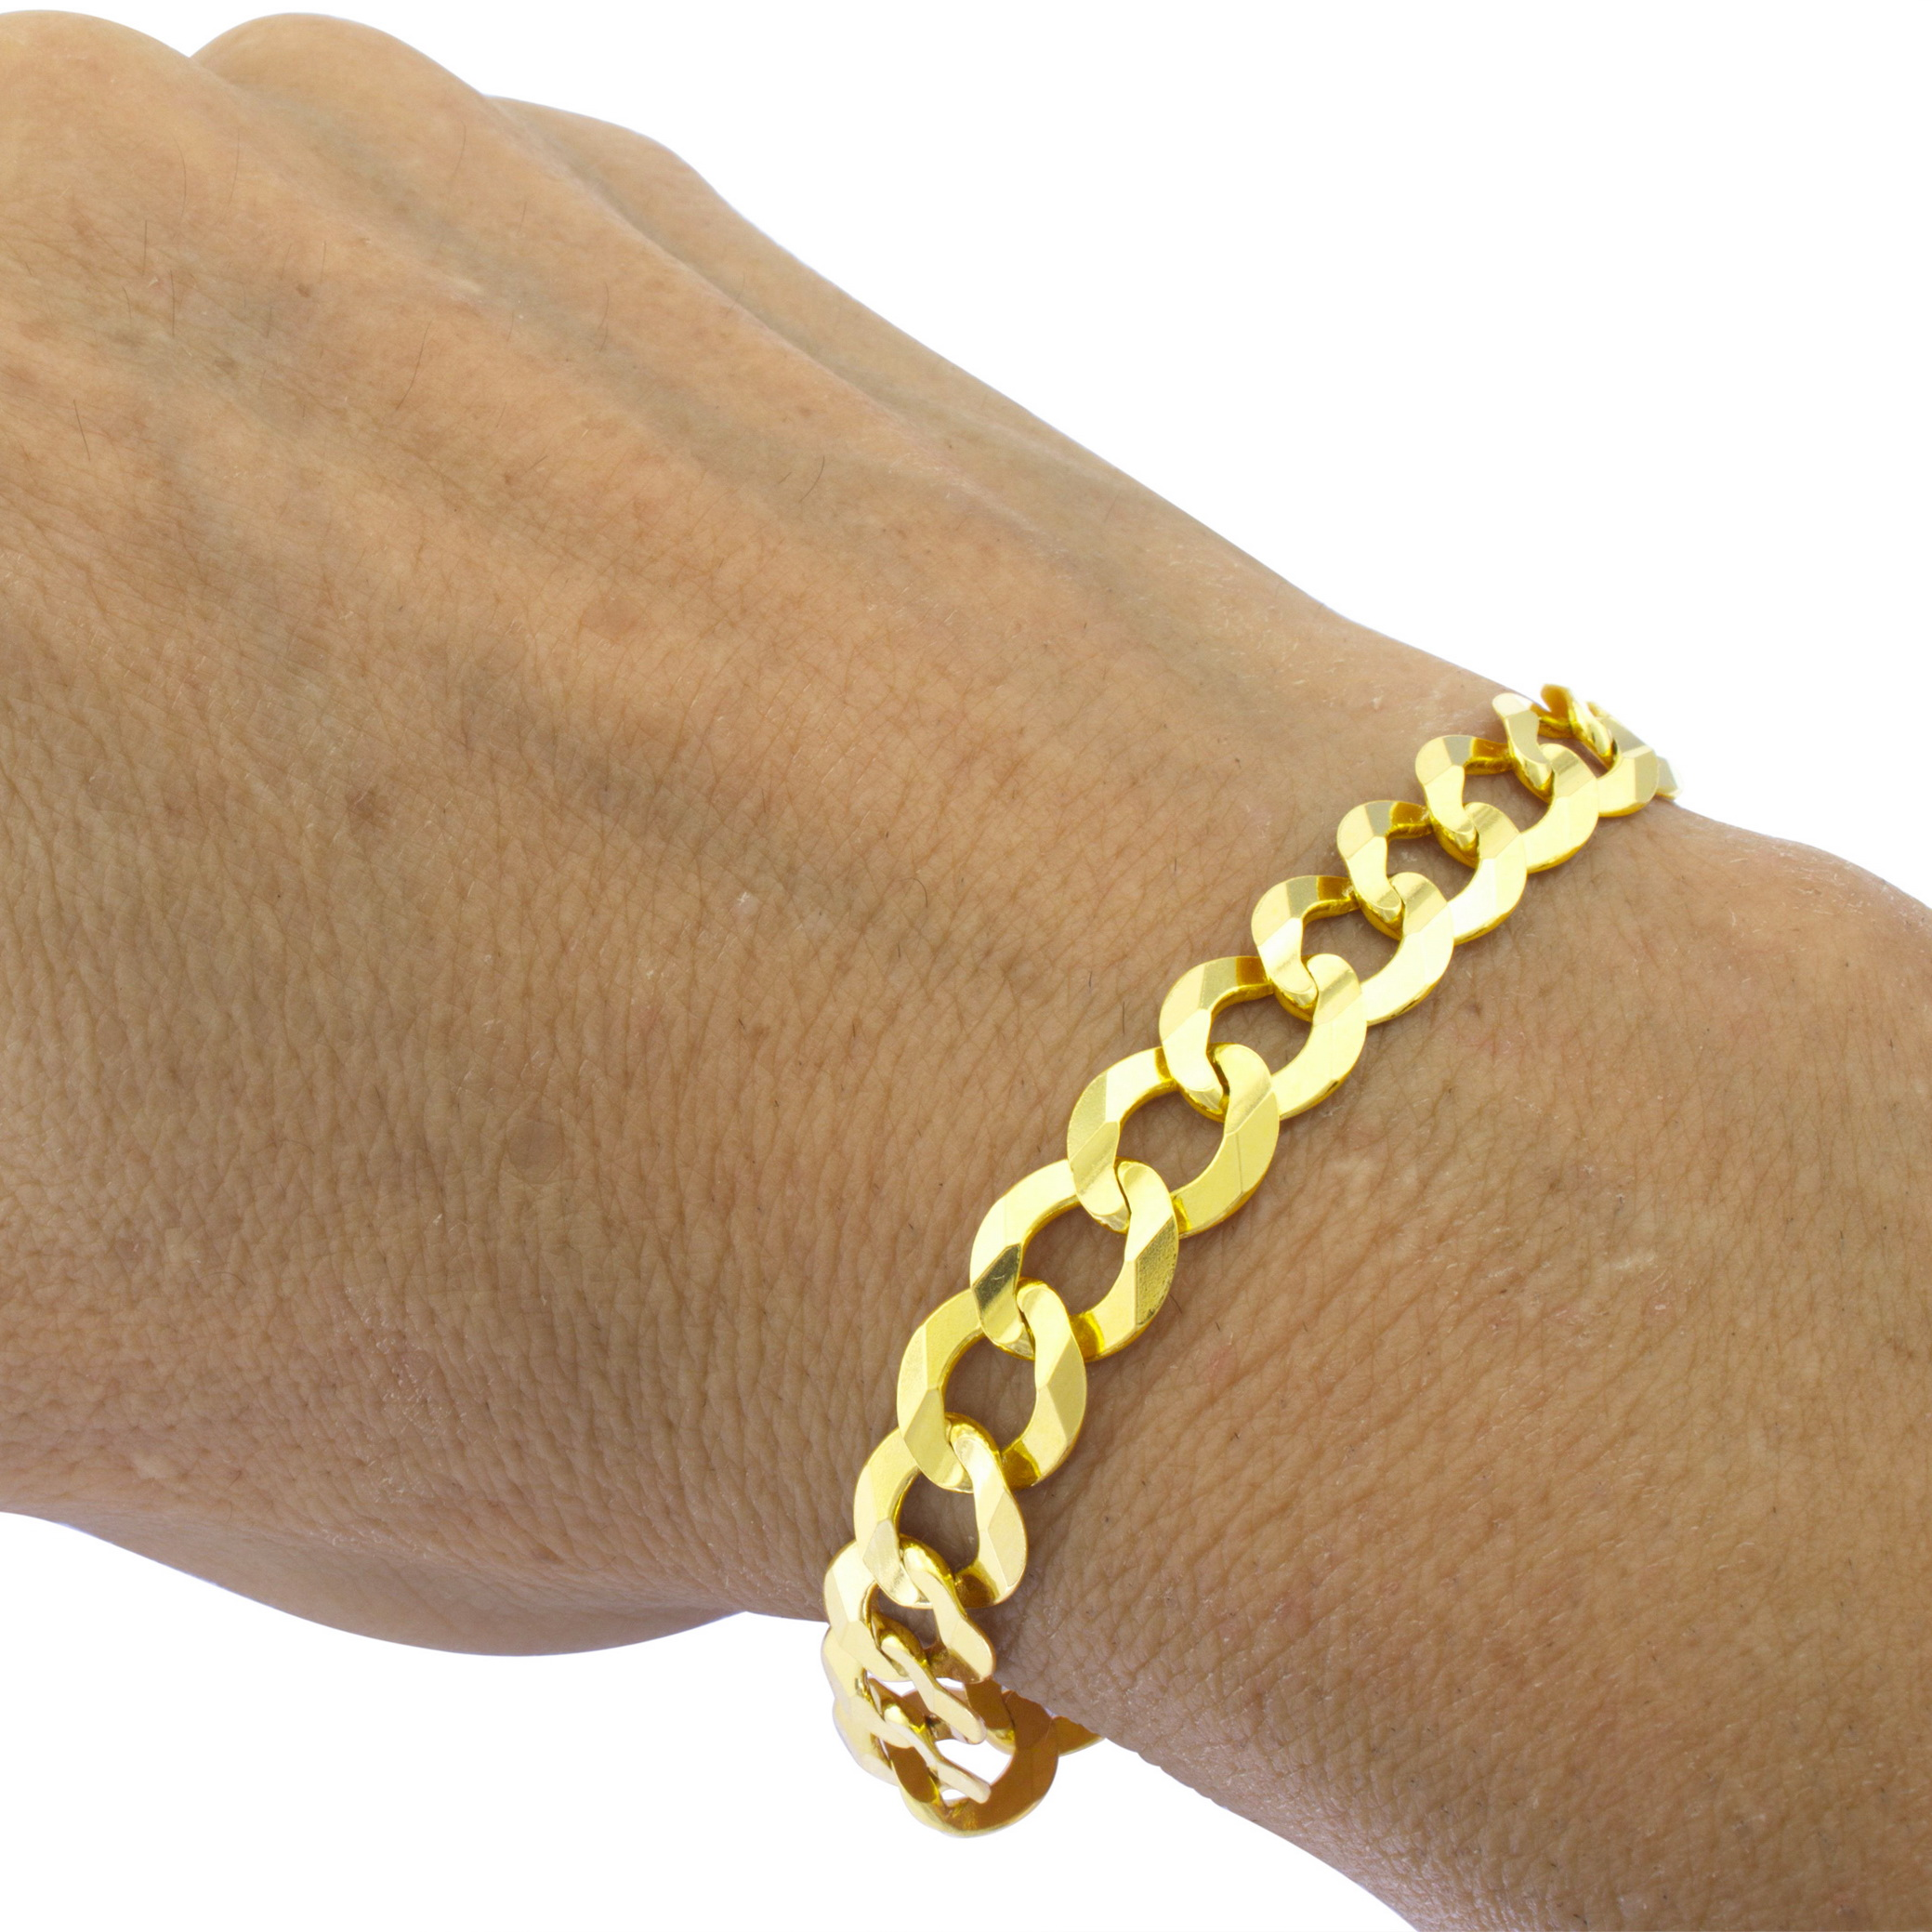 Fine Jewelry Made In Italy Mens 9 Inch 10K Gold Link Bracelet 7NfEo